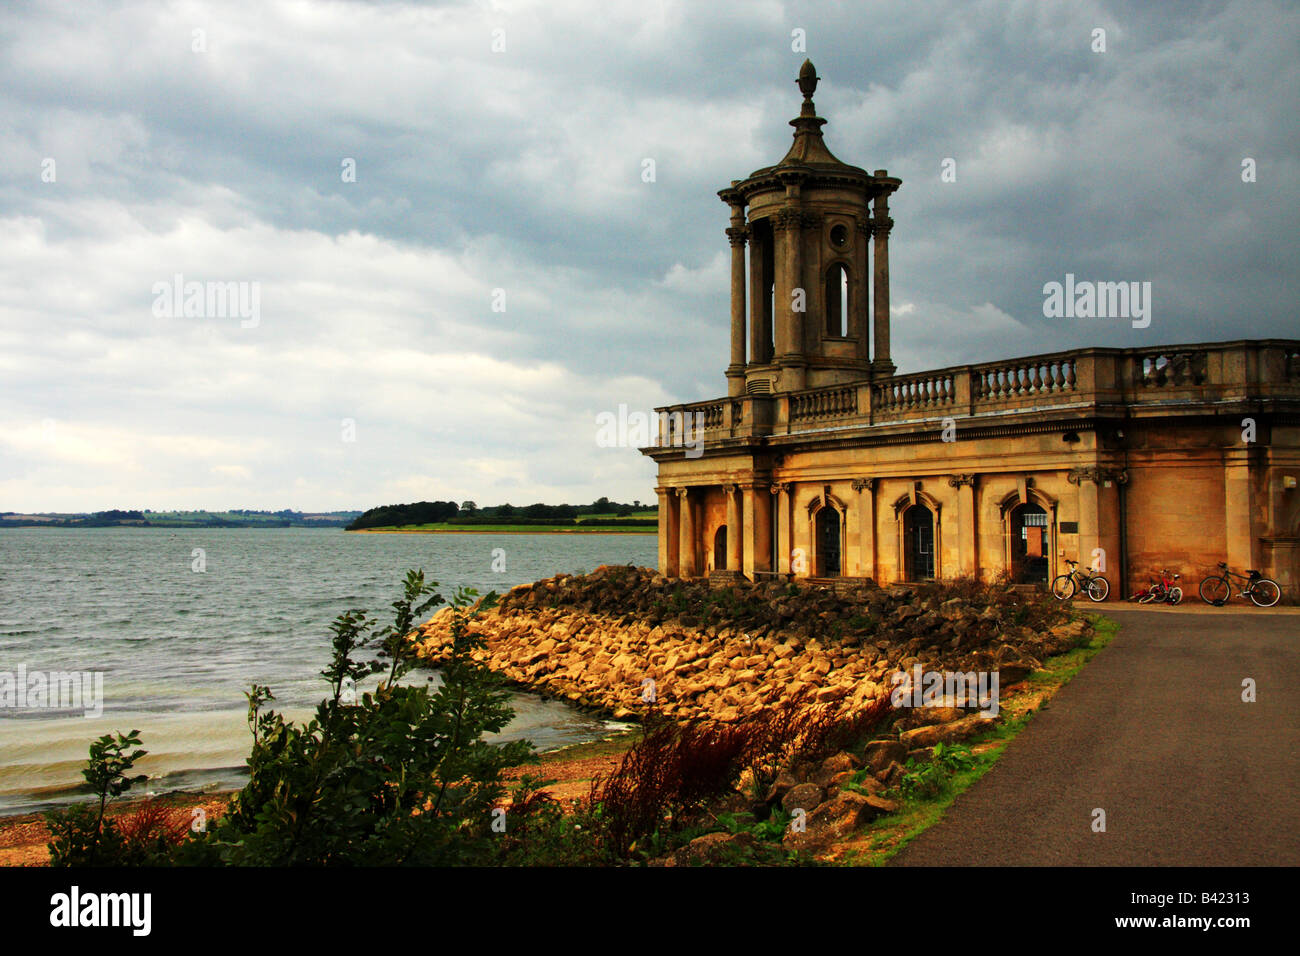 Rutland Water Museum on Rutland Water,Leicestershire - Stock Image